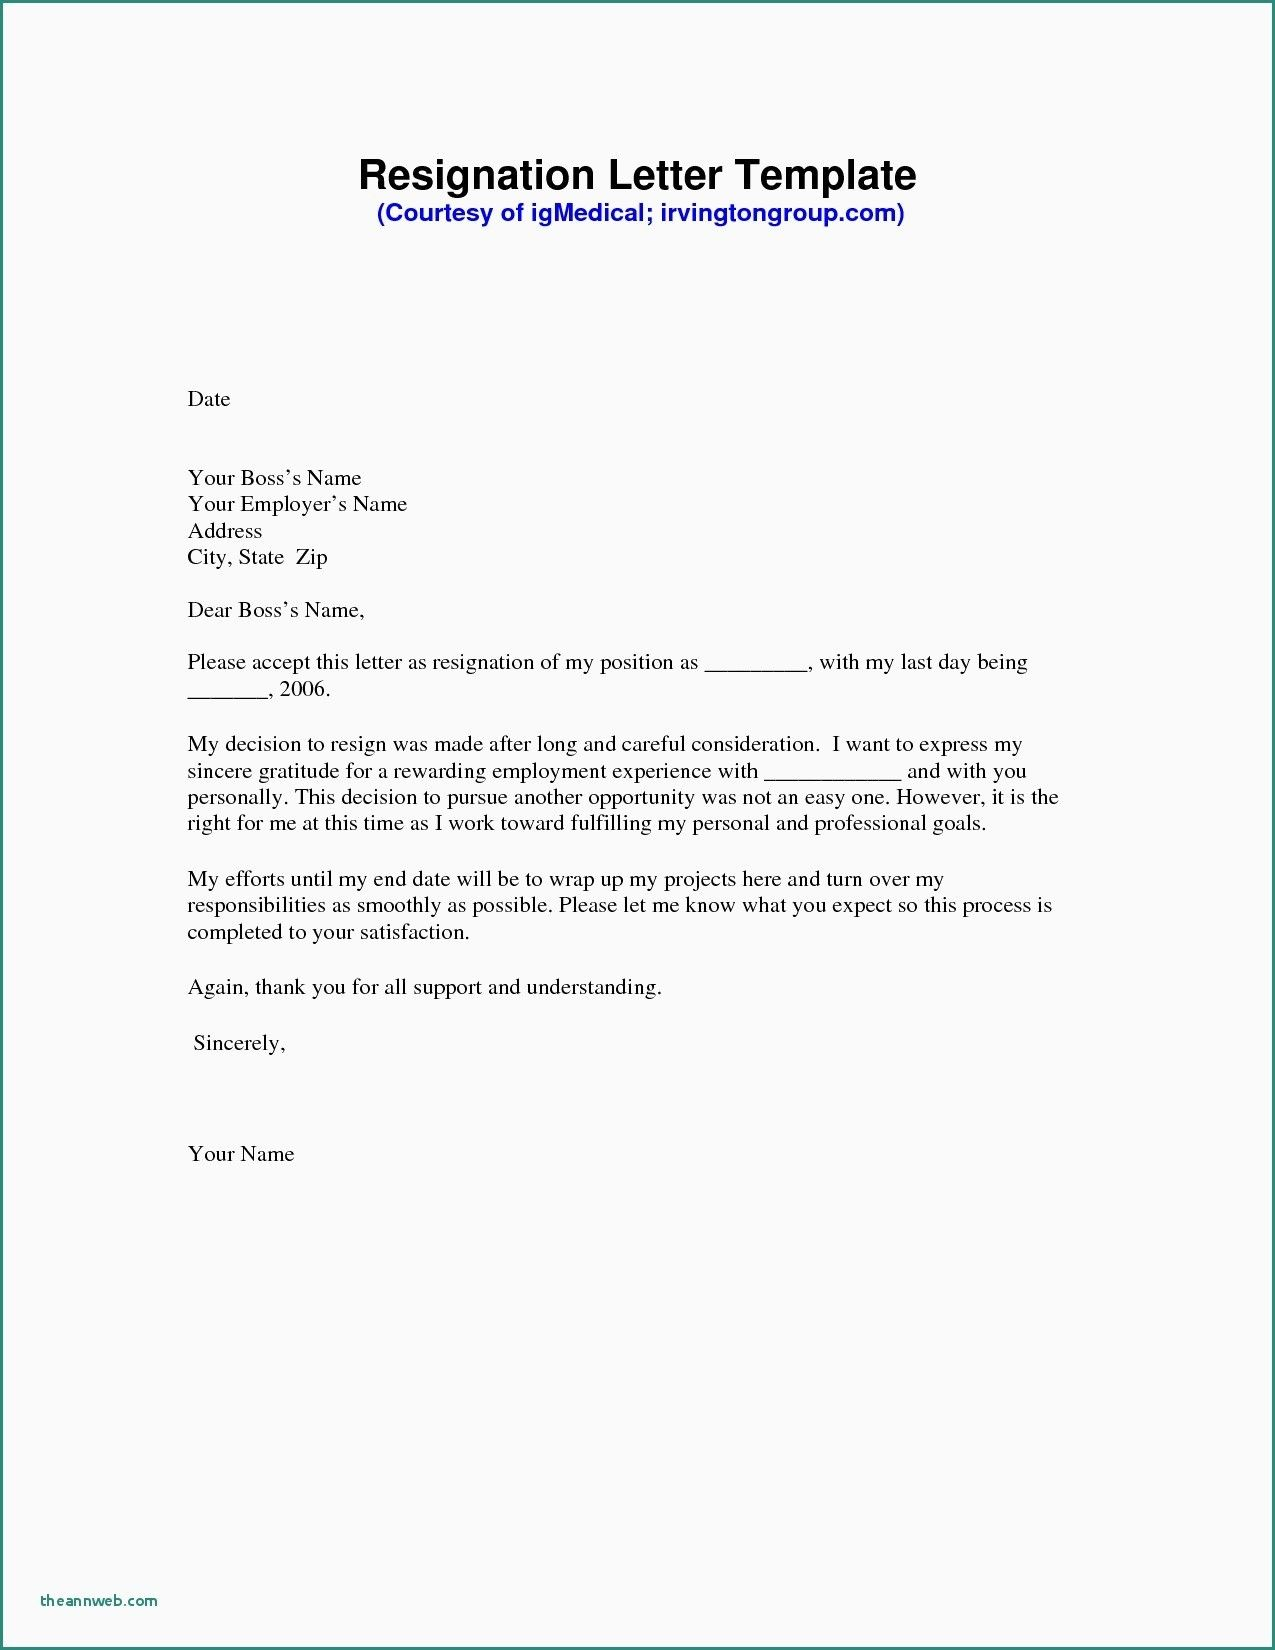 New Resignation Letter From Maternity Leave Resignation Template